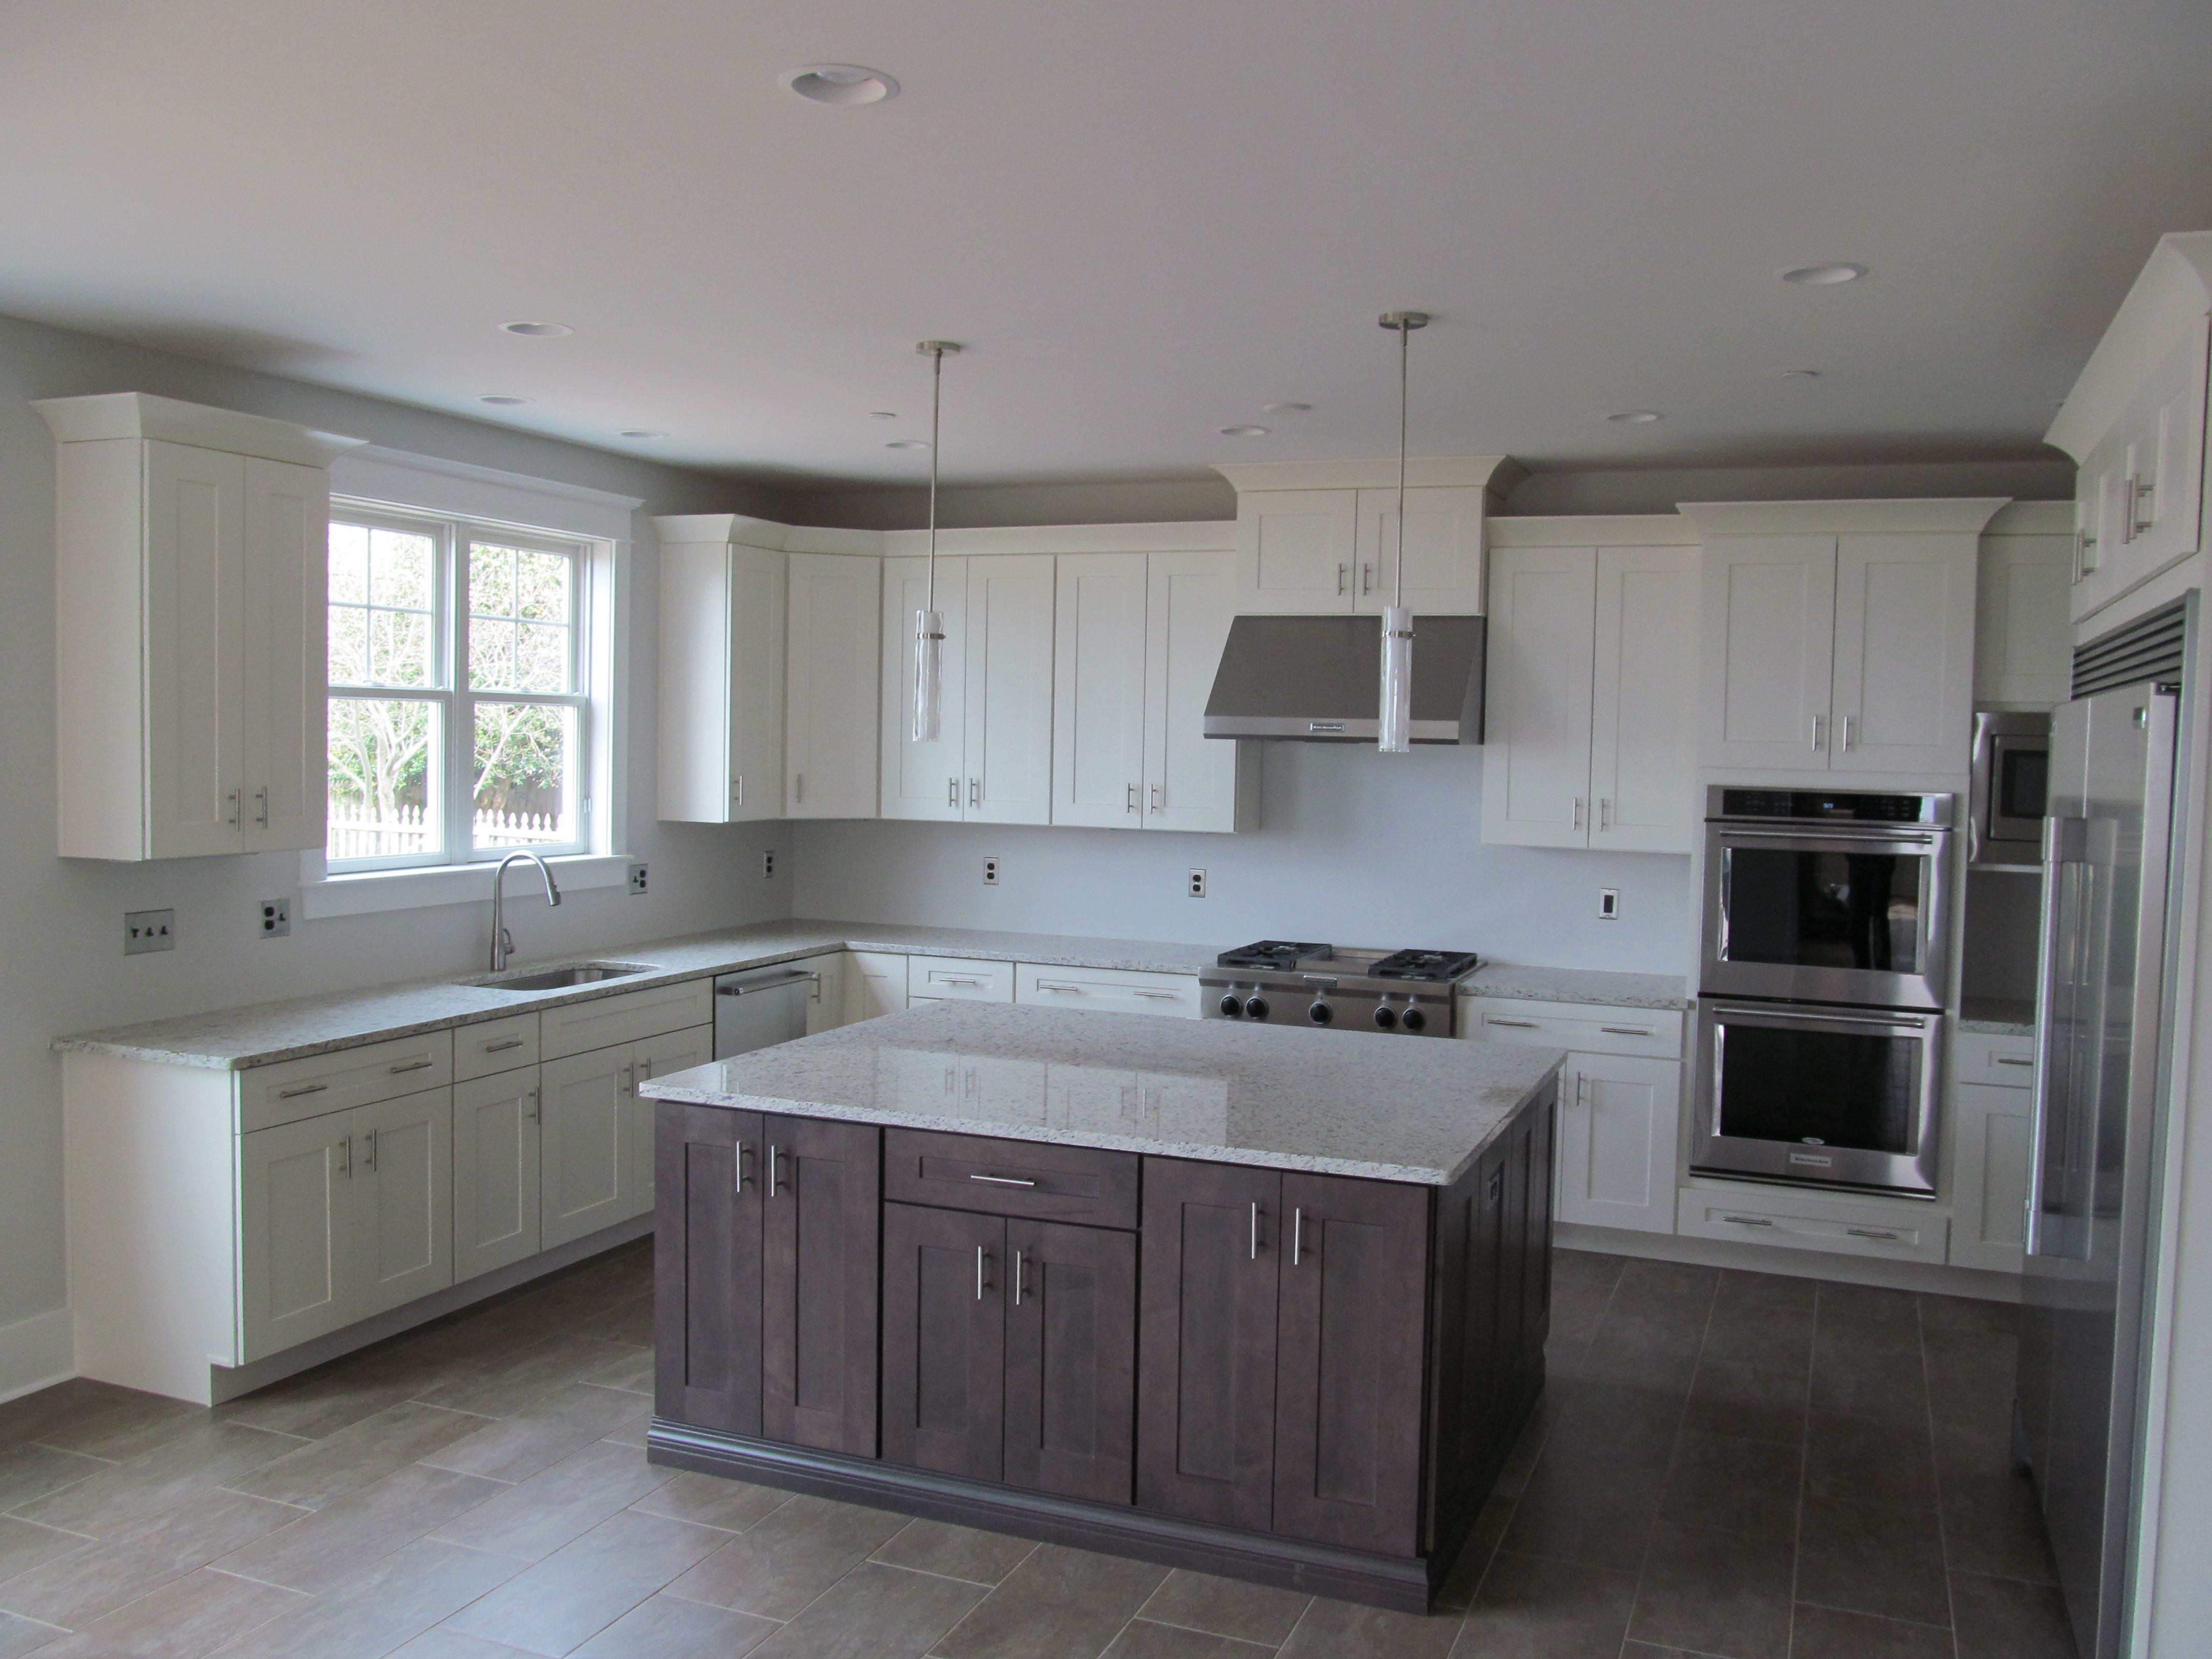 Kitchen Cabinets By Diamond Vibe Island Style Is Forte Color Riverwood Perimeter Style Is Forte Color Brie Kitchen Remodel Custom Homes Custom Home Builders